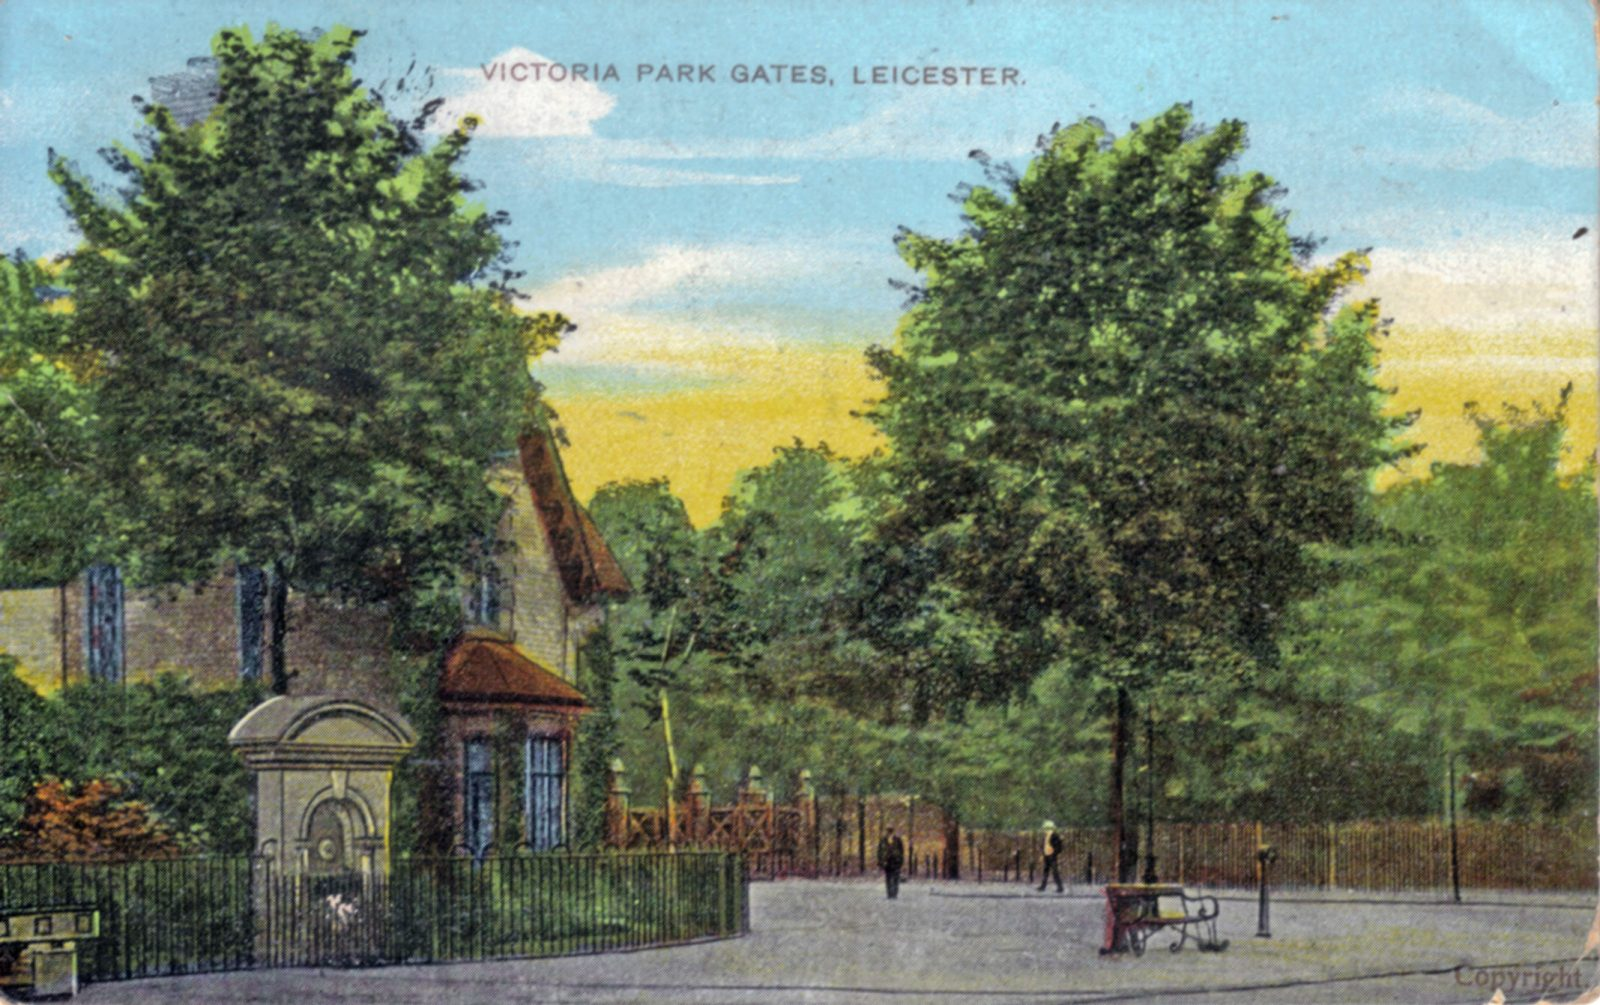 Victoria Park, Leicester. 1901-1920: Entrance Gates. Posted 1904-1910 (File:1084)